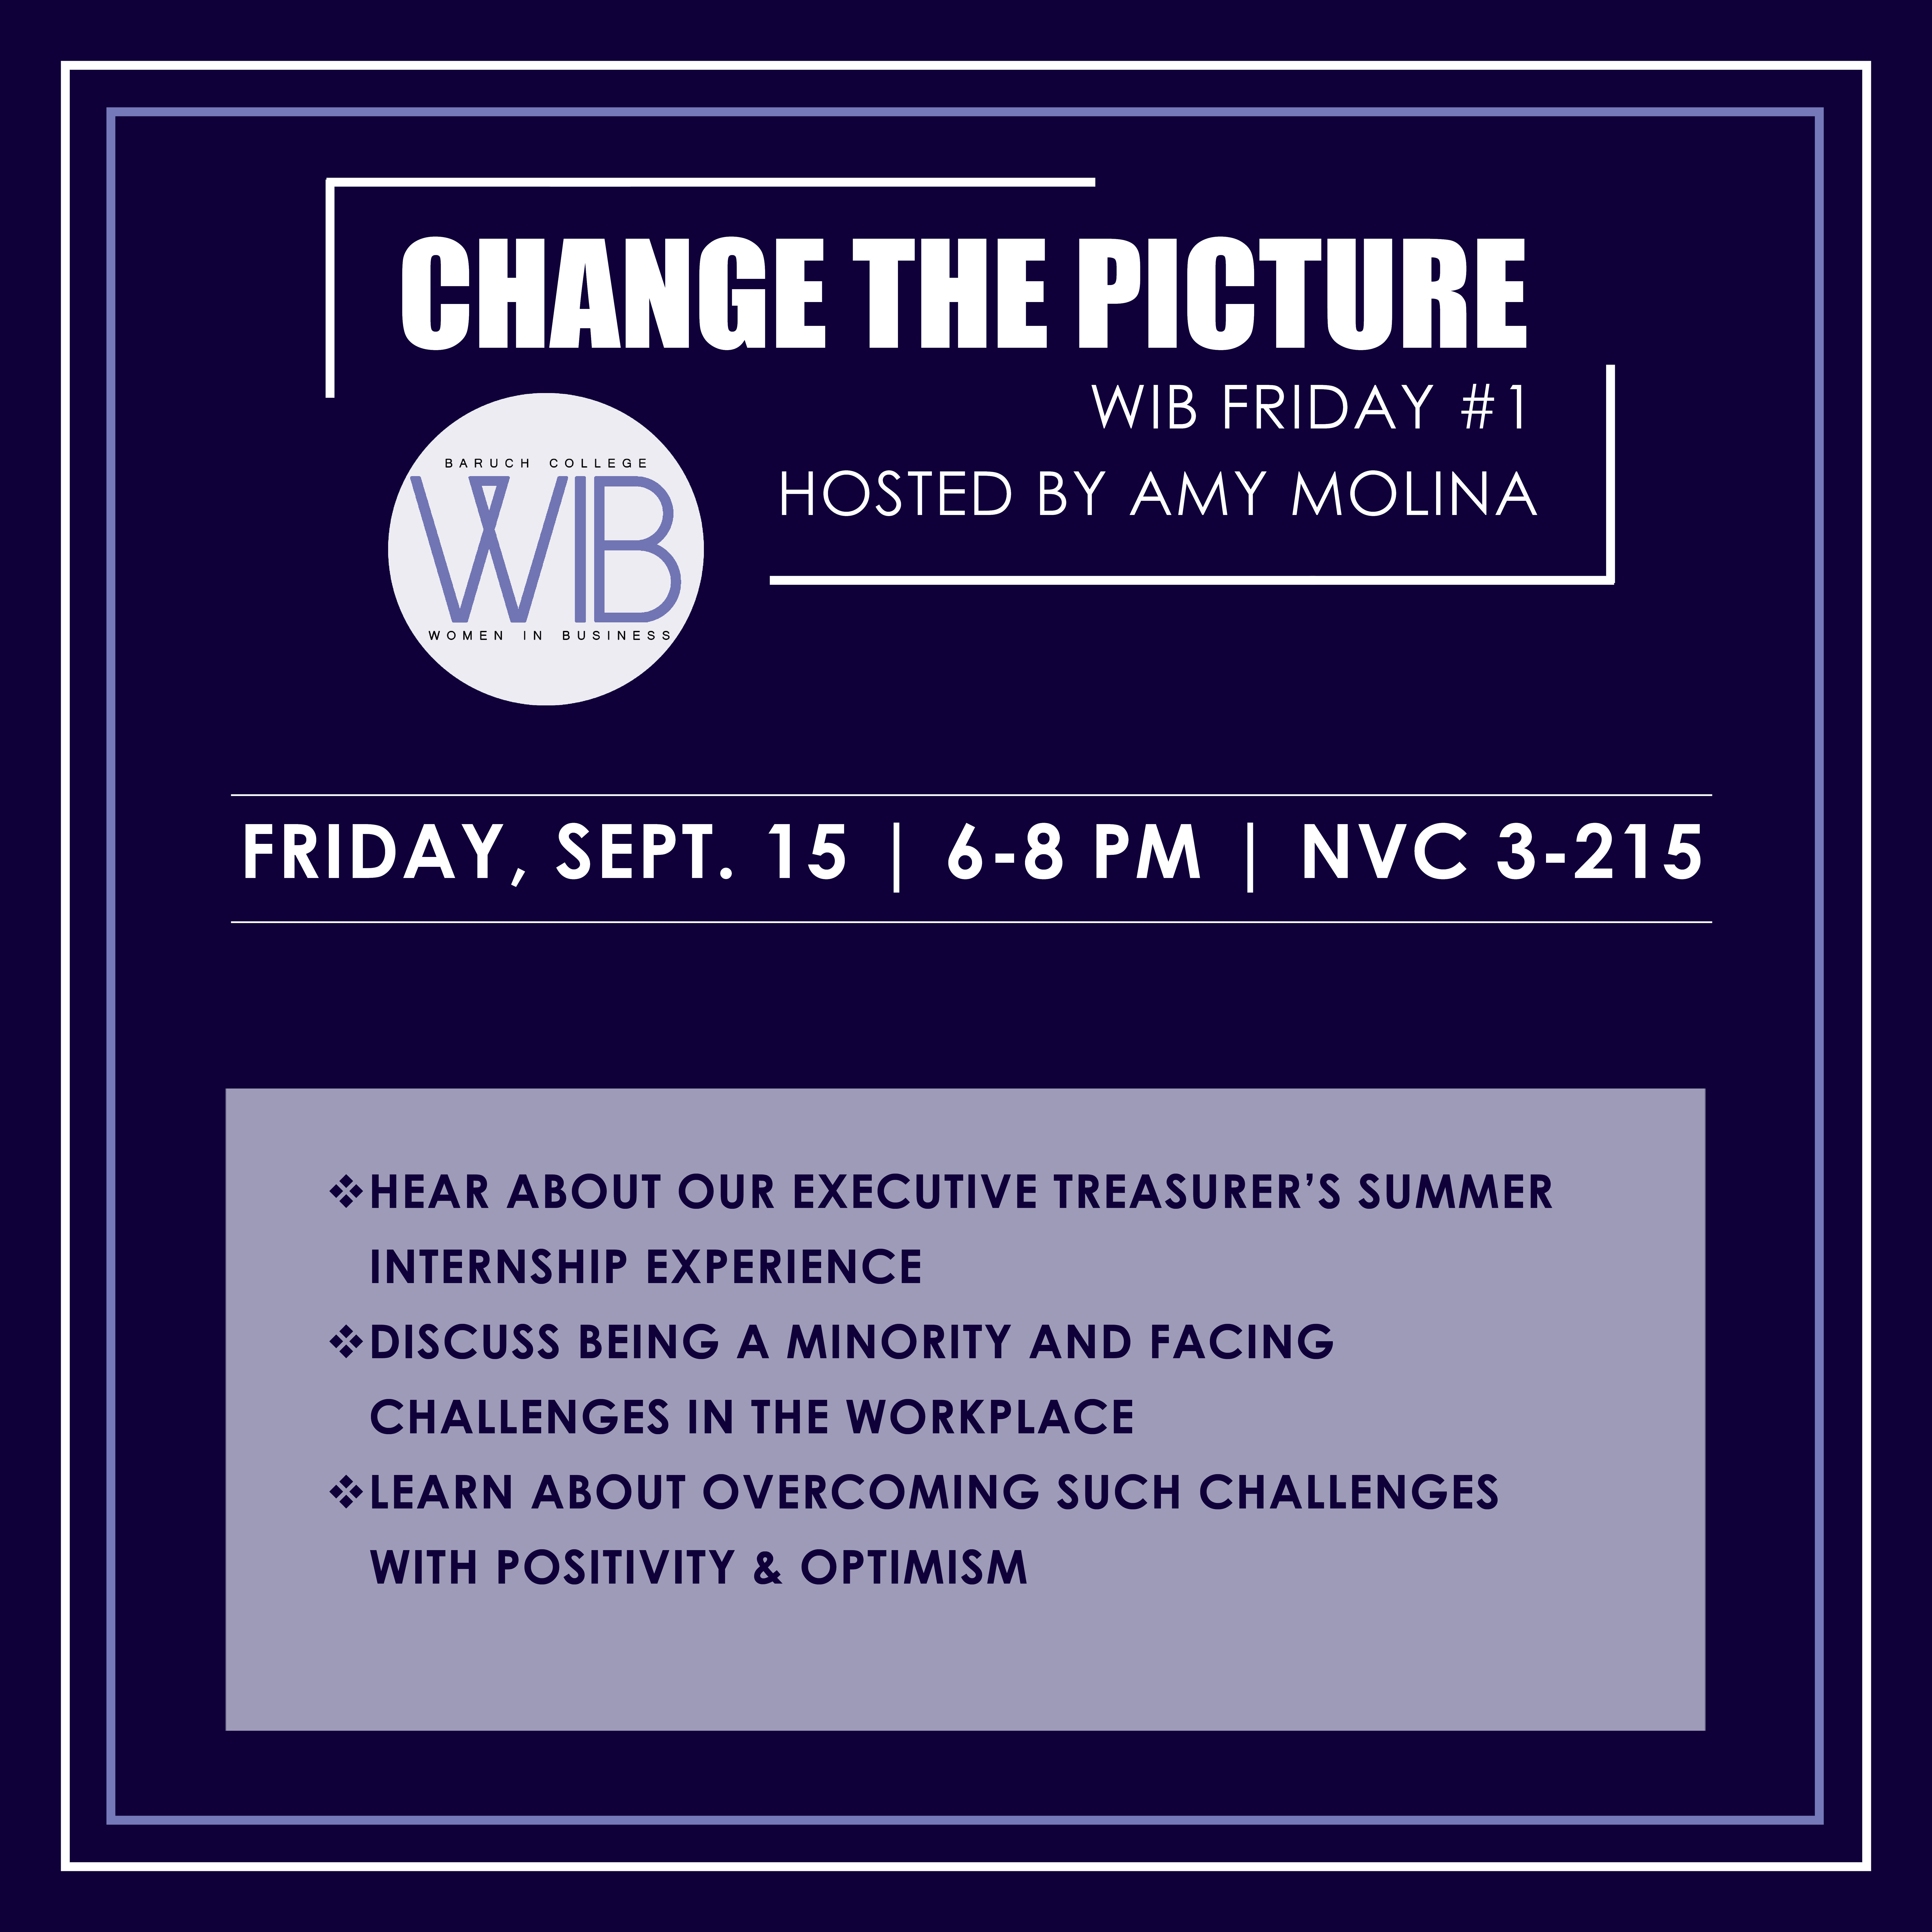 Change the Picture